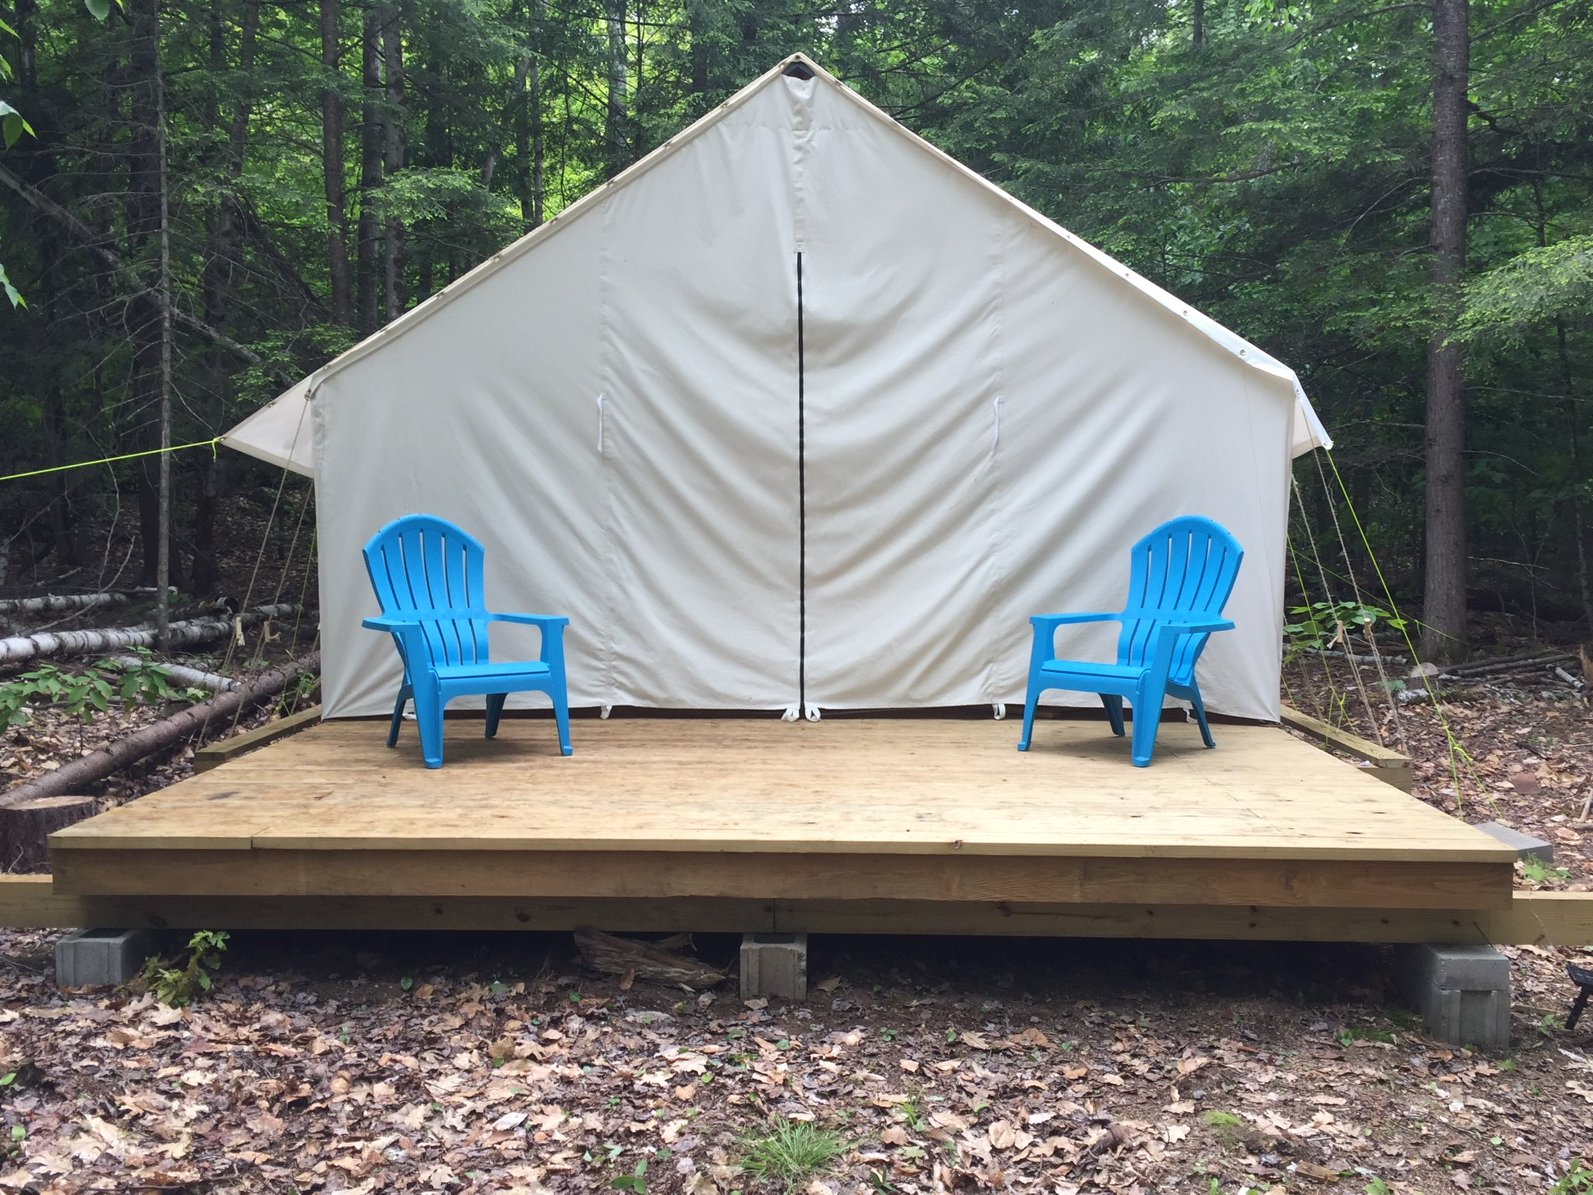 Glamping in the ADKs